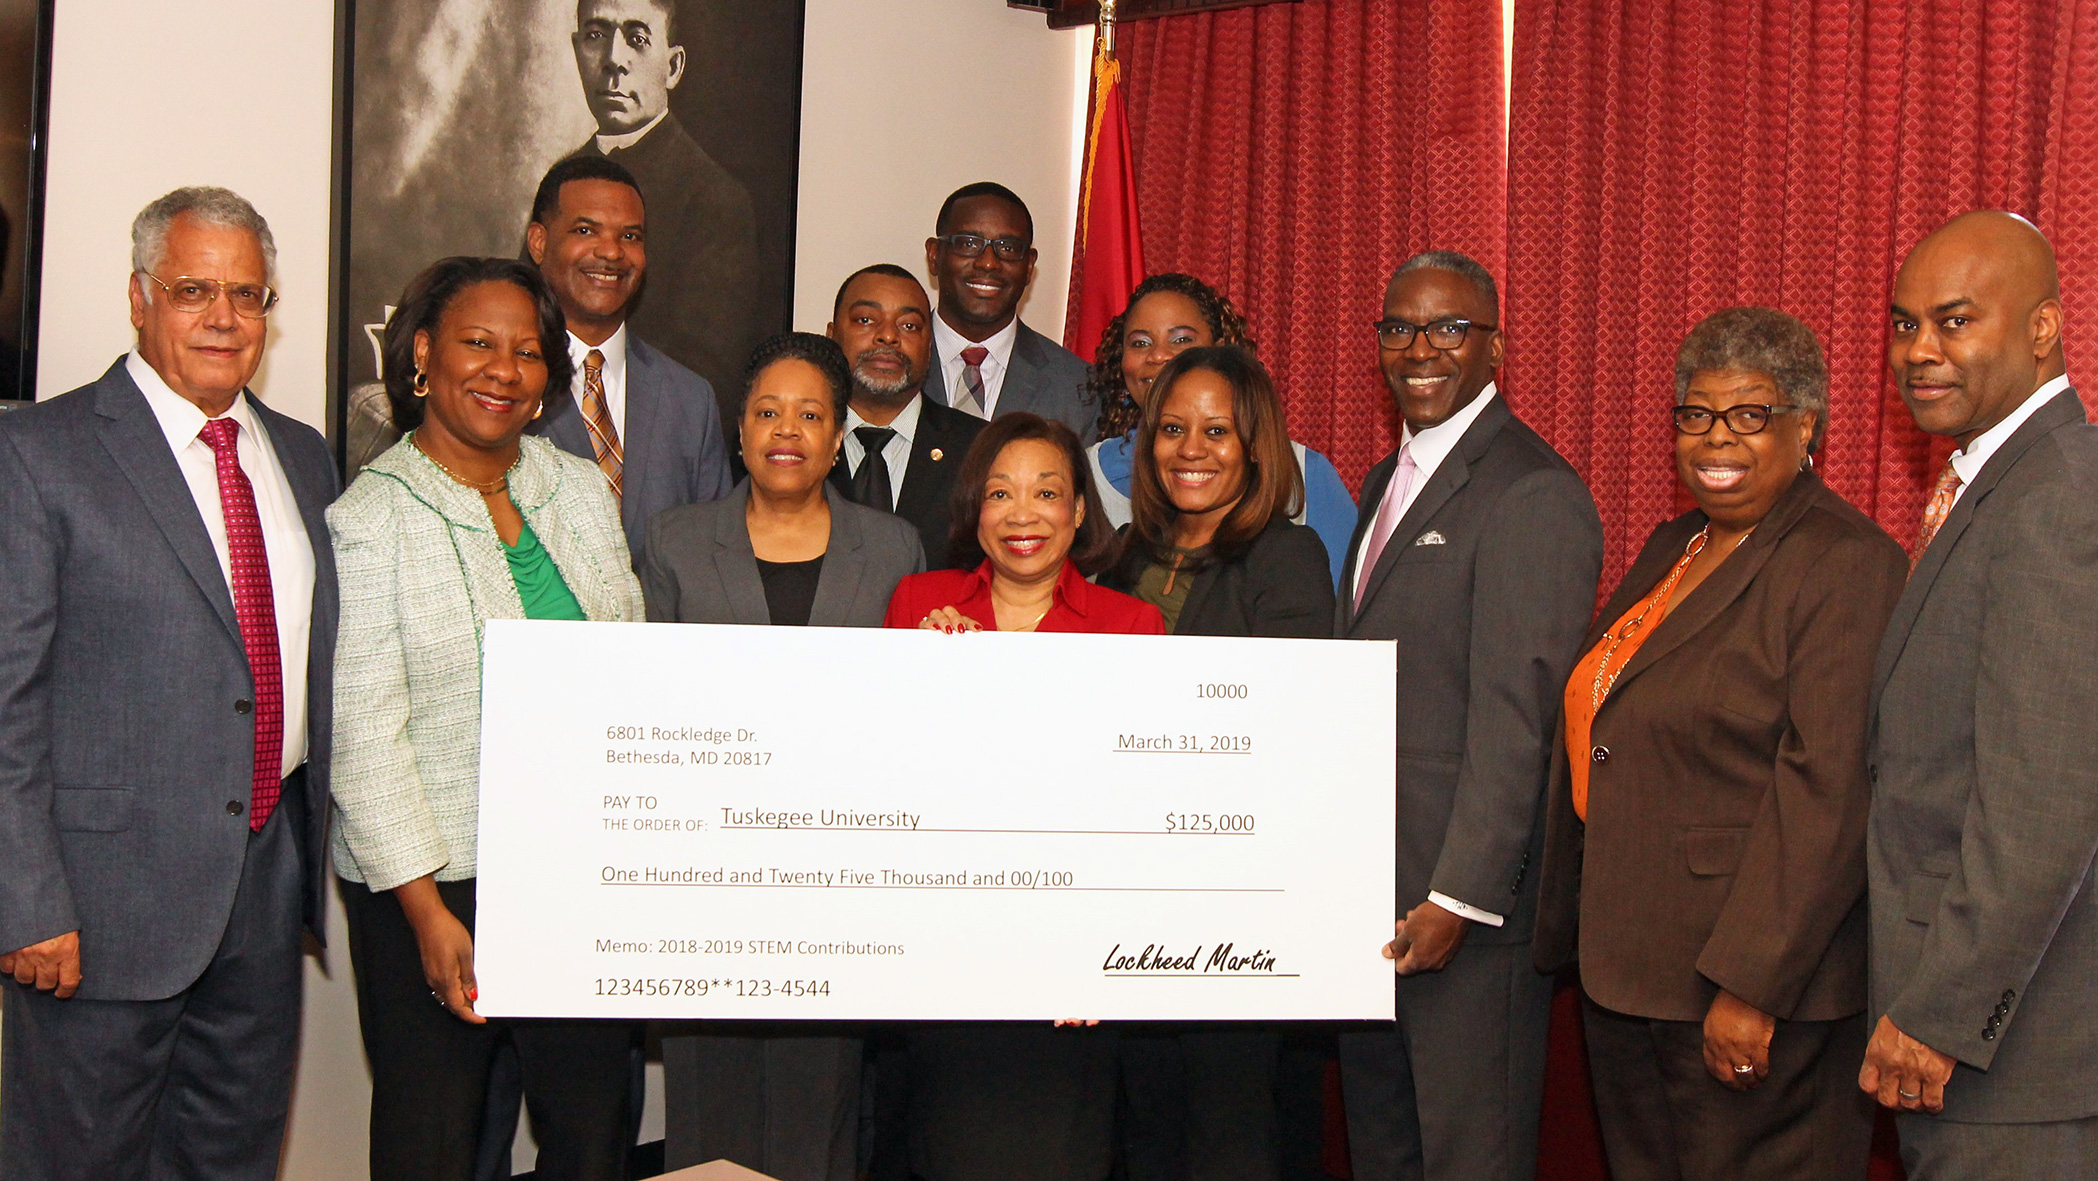 Tuskegee University President Dr. Lily McNair and university officials accept check from Lockheed Martin representatives